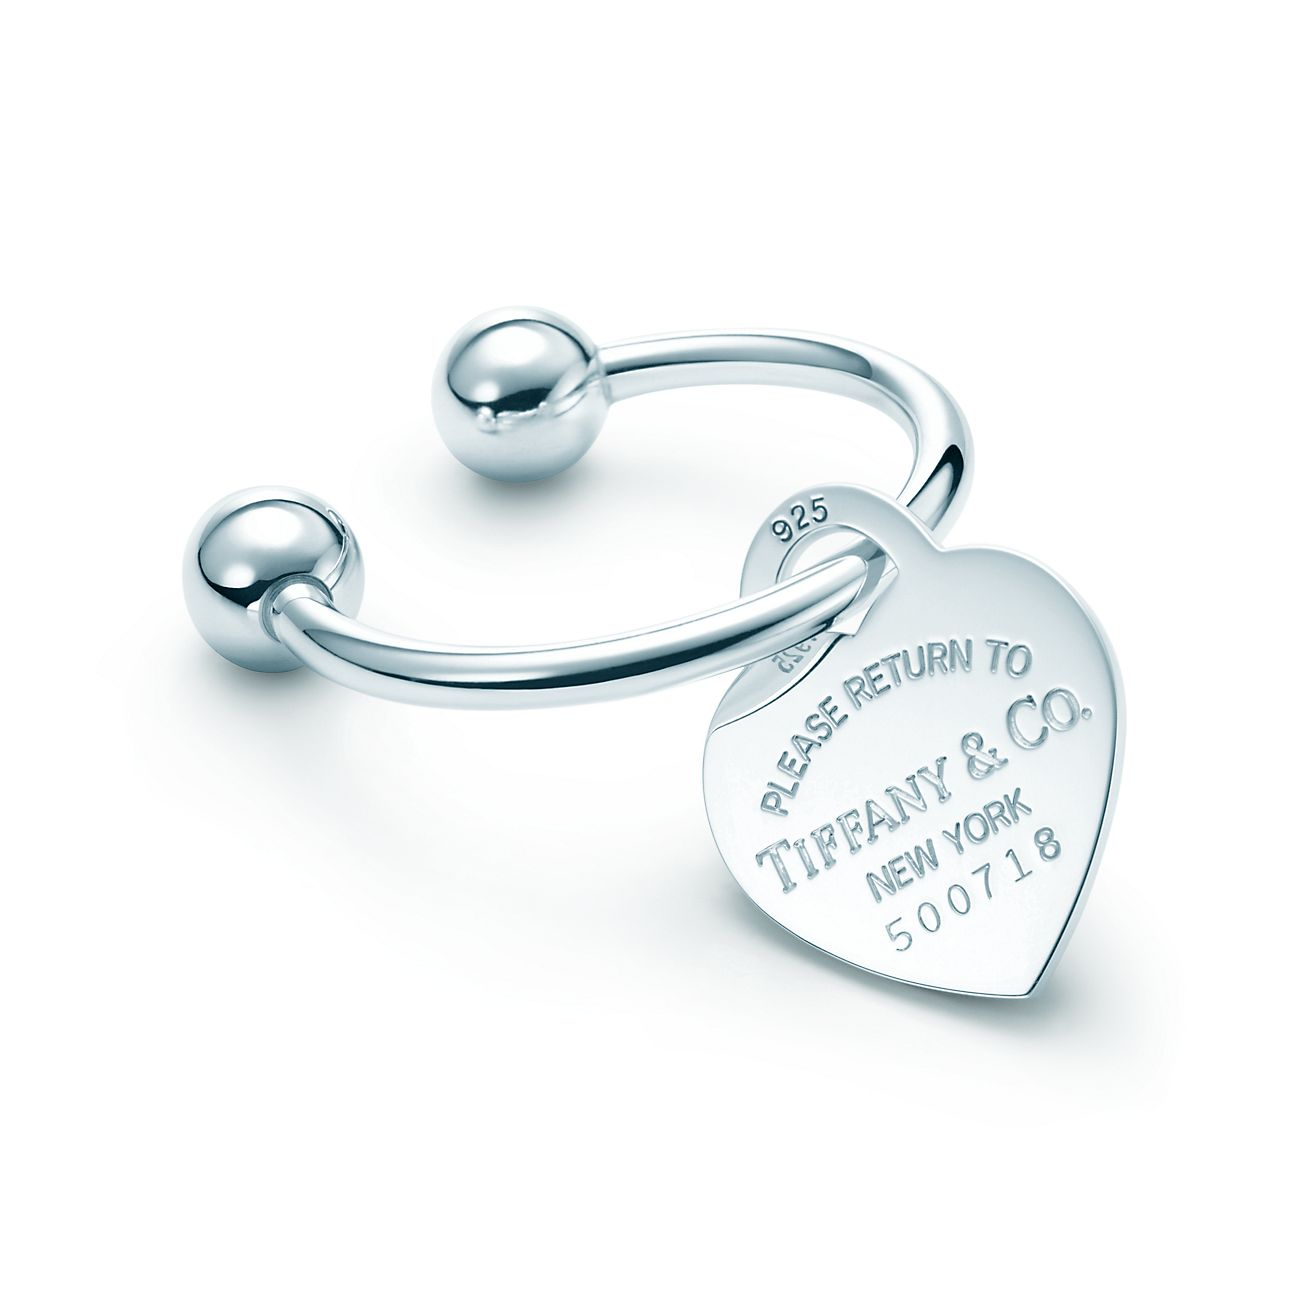 Return To Tiffany® Heart Tag Key Ring In Sterling Silver. Gia Certified Diamond Engagement Rings. February Wedding Rings. Crisscross Engagement Rings. S Letter Engagement Rings. Expensive Wedding Rings. Spiritual Engagement Wedding Rings. Bead Engagement Rings. Architect Rings